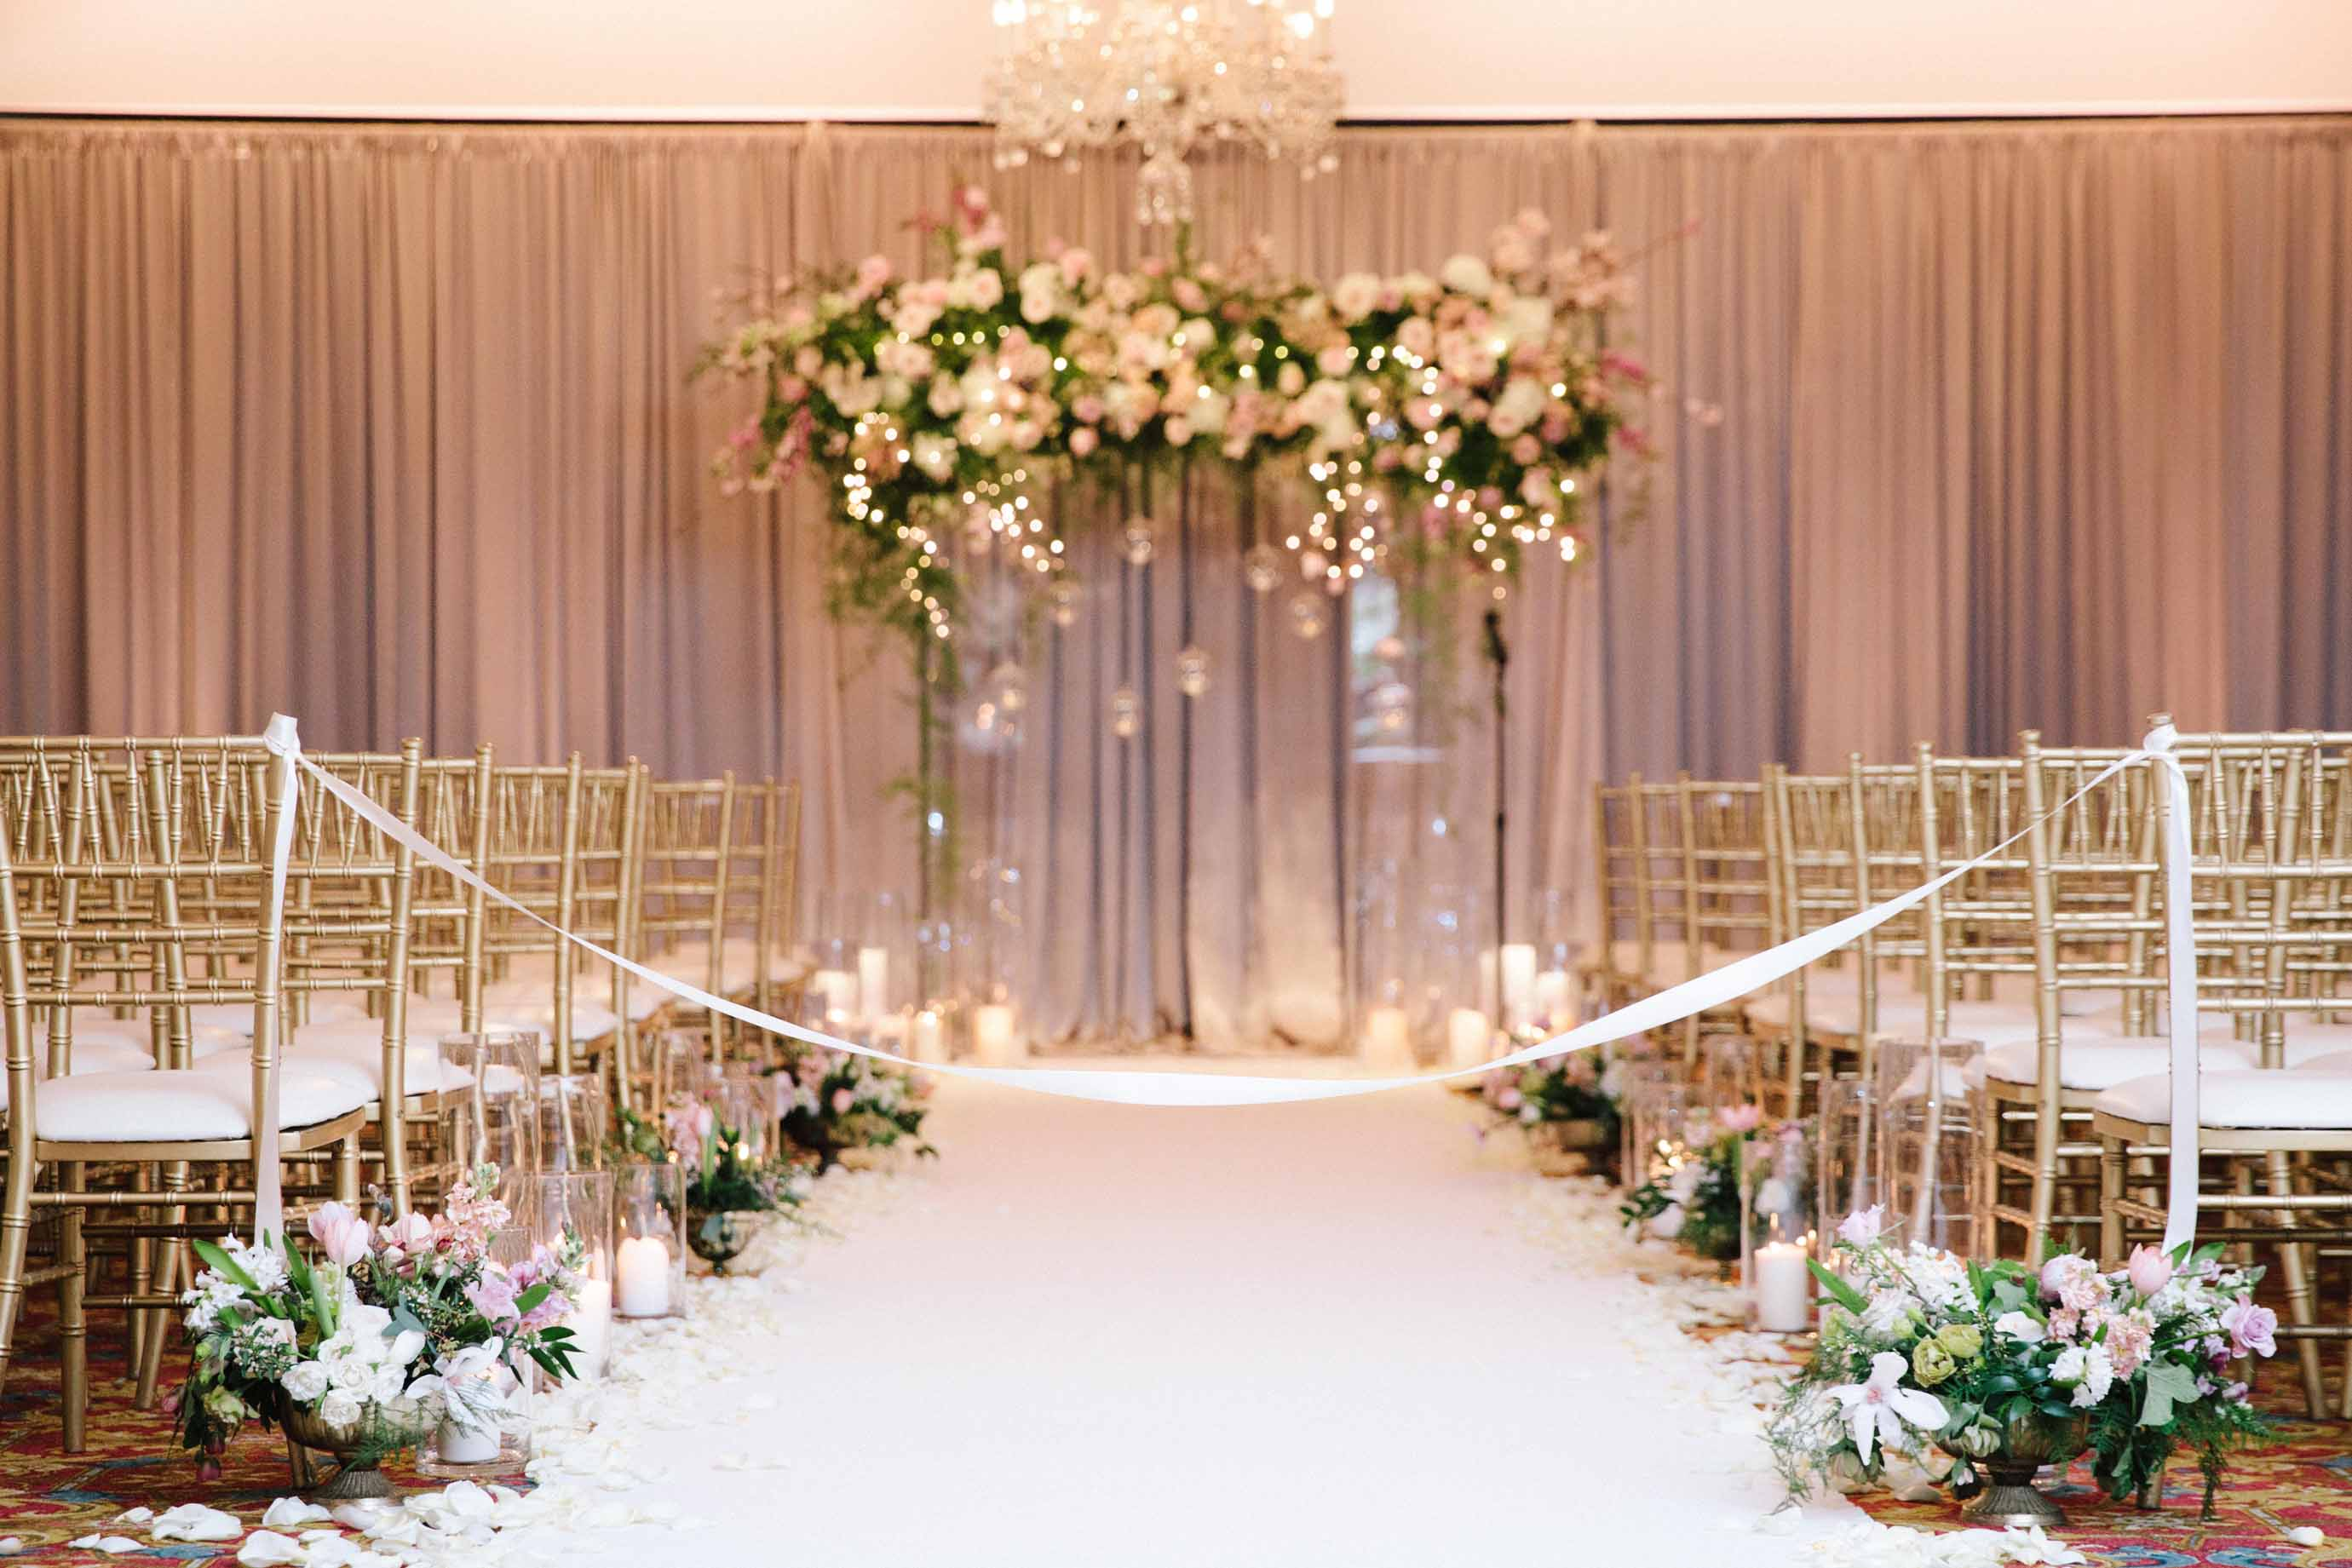 Large floral arch for wedding ceremony in front of white aisle lined with candles and flowers